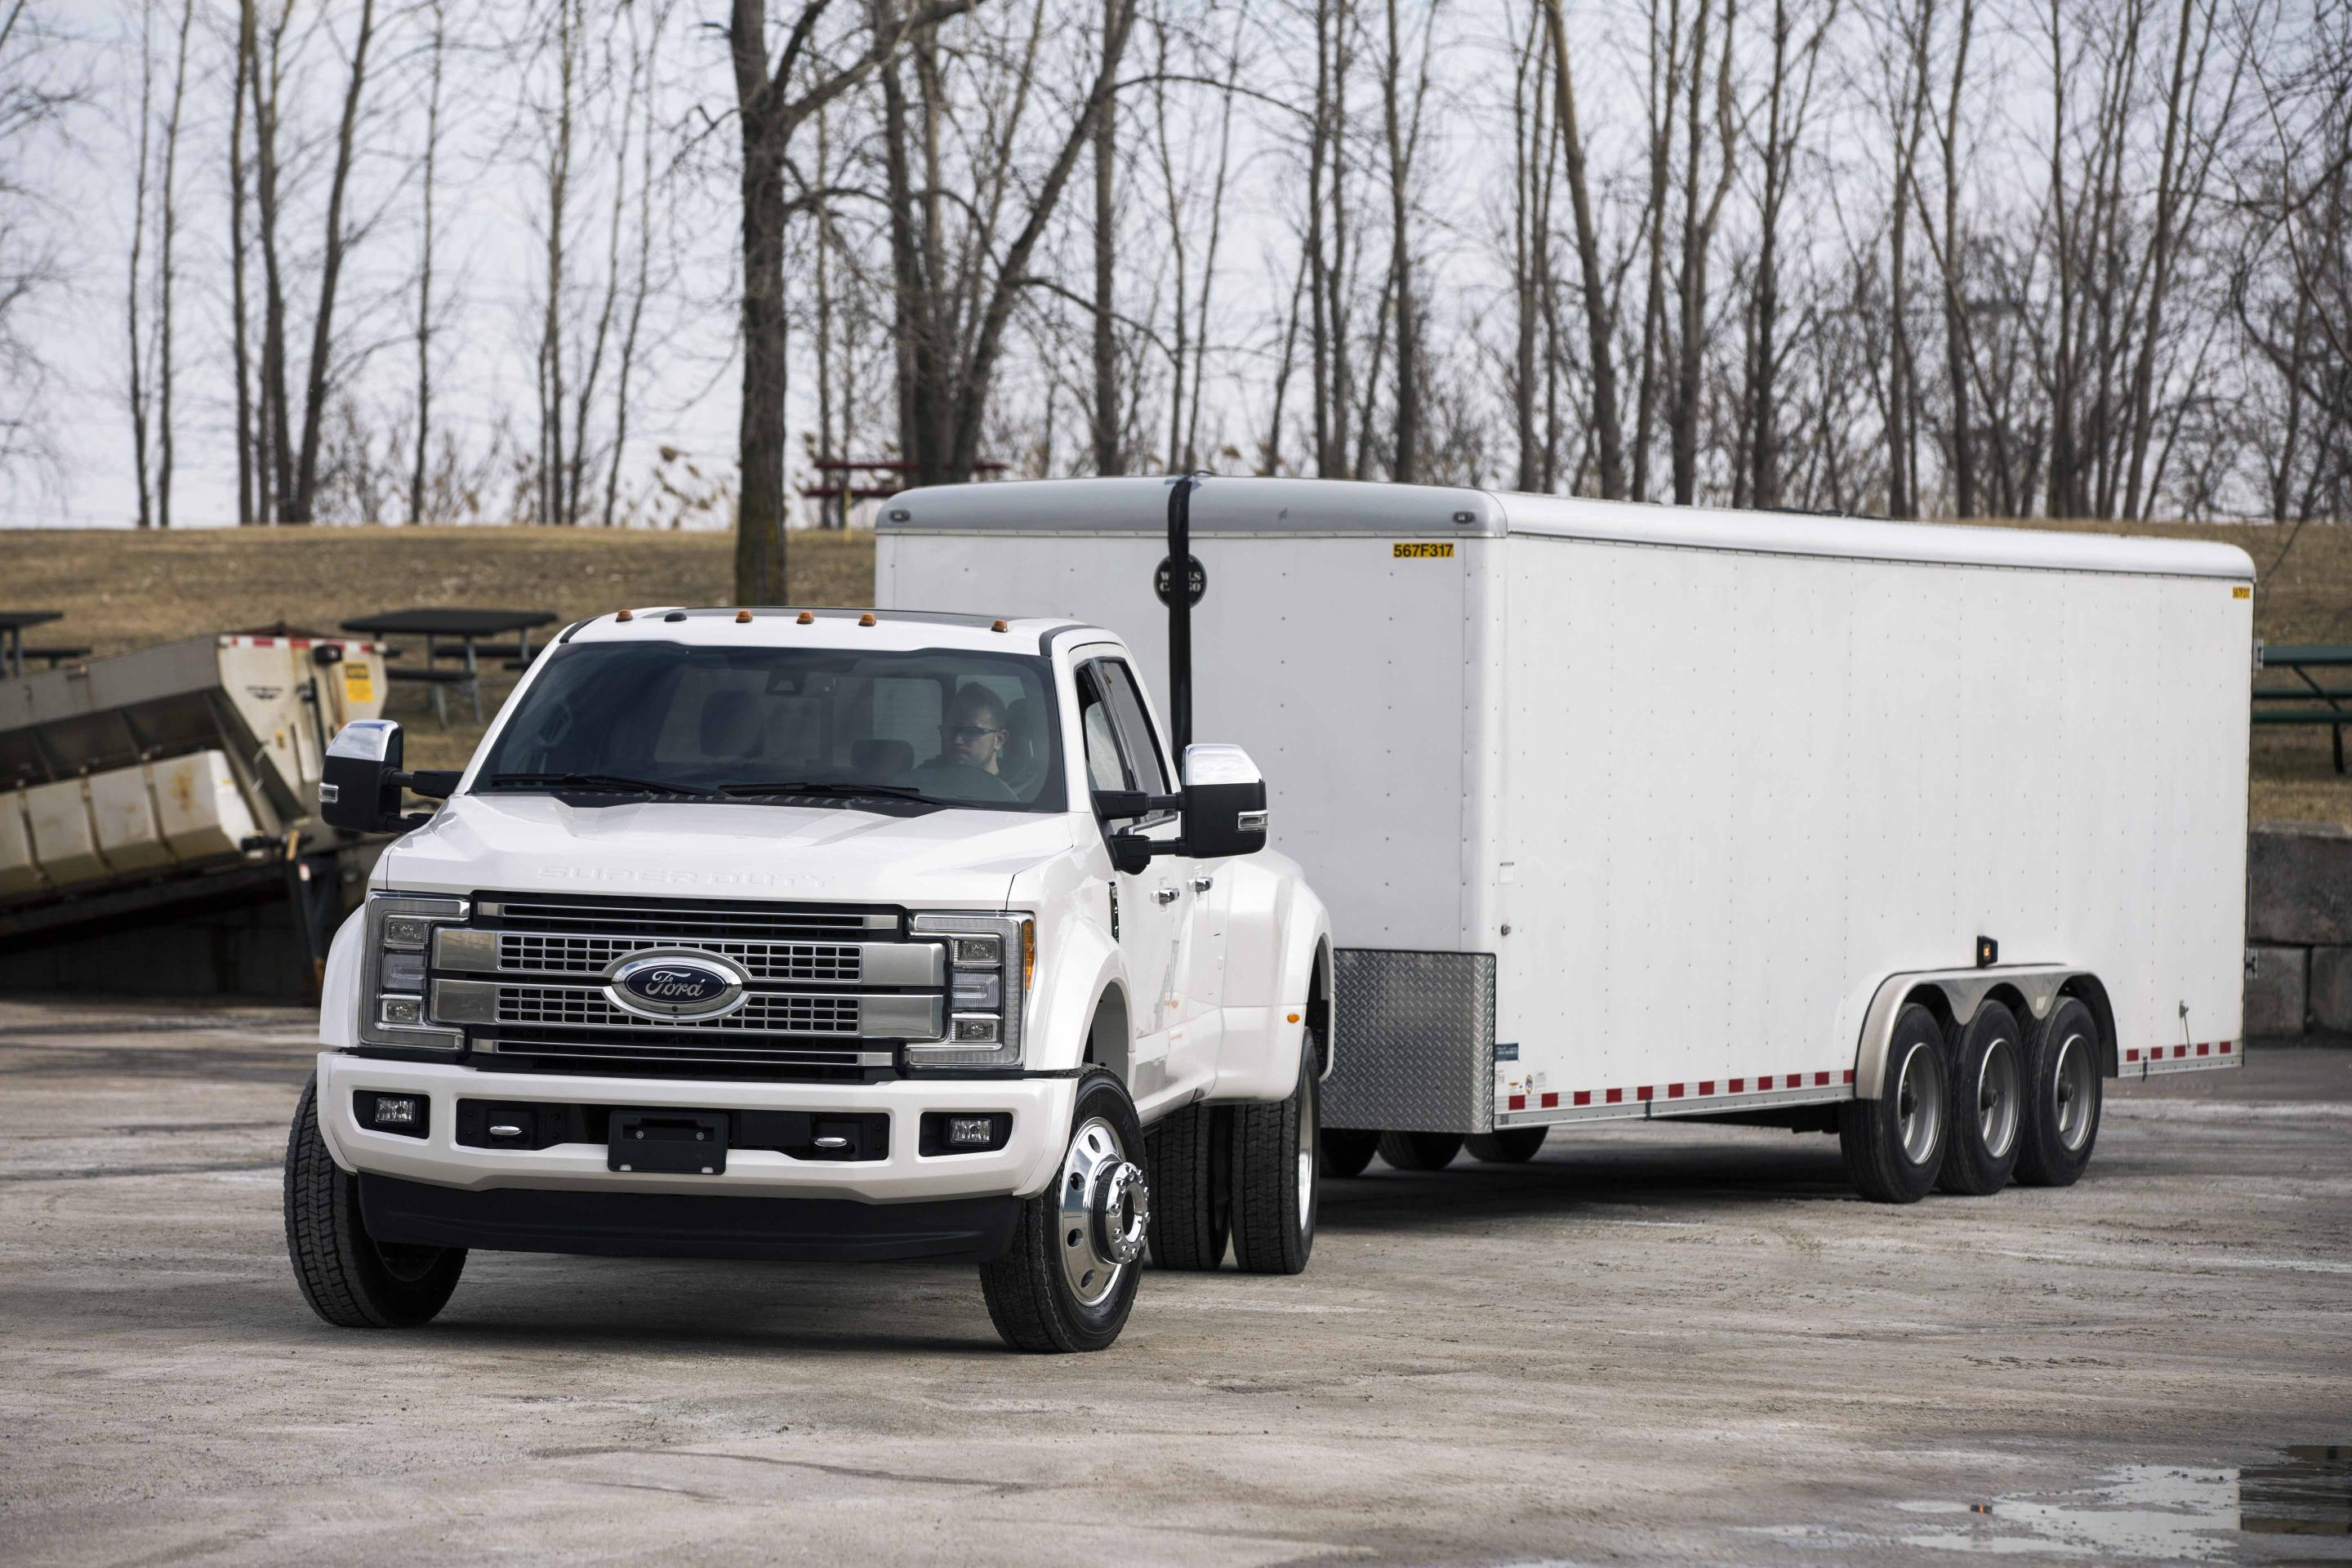 2017 Ford Super Duty Can Be Equipped With Seven Cameras